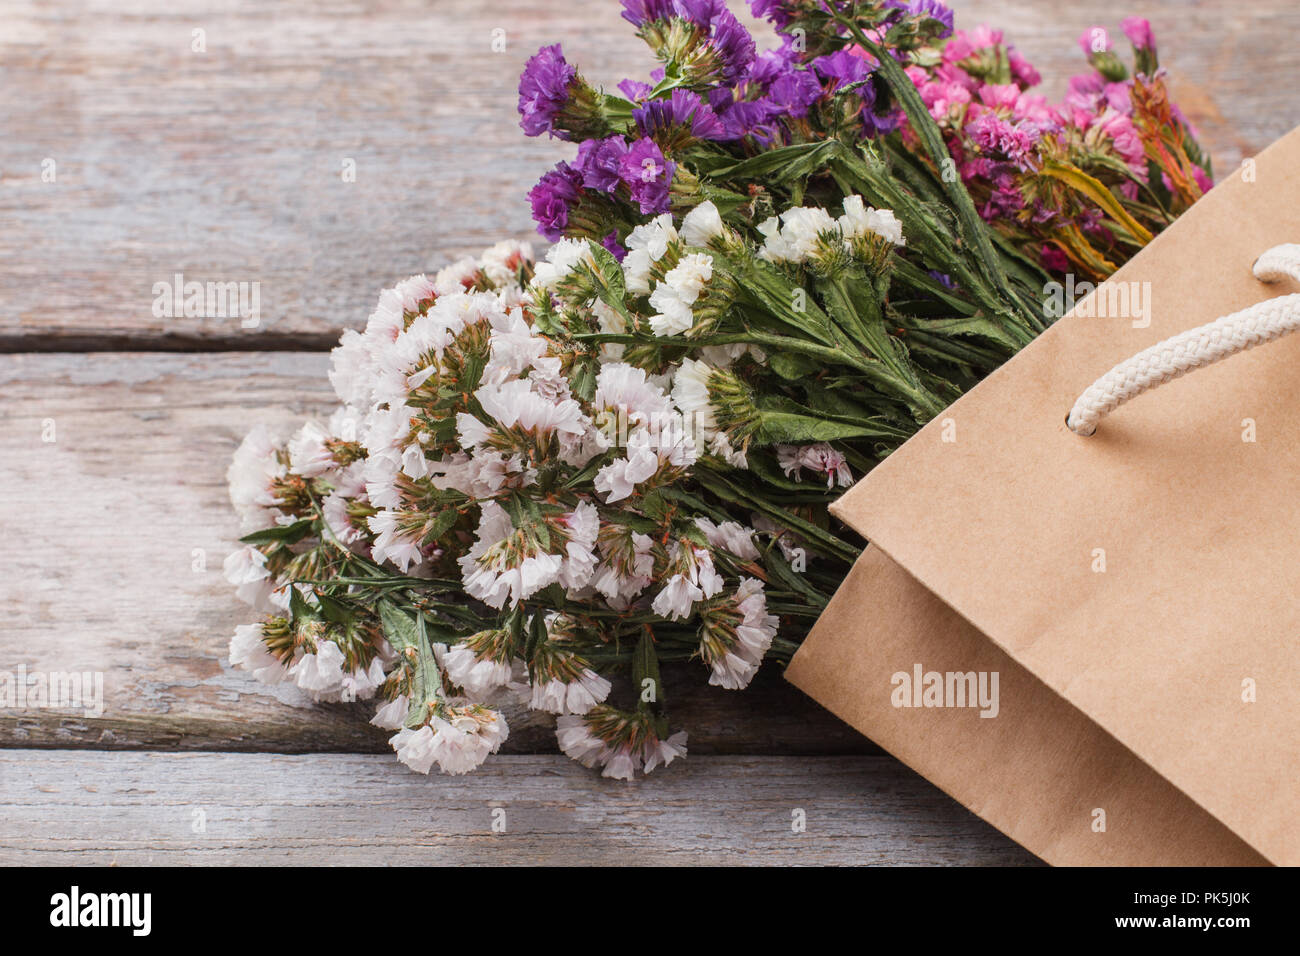 White Purple Pink Statice Limonium Flowers In Paper Bag Close Up